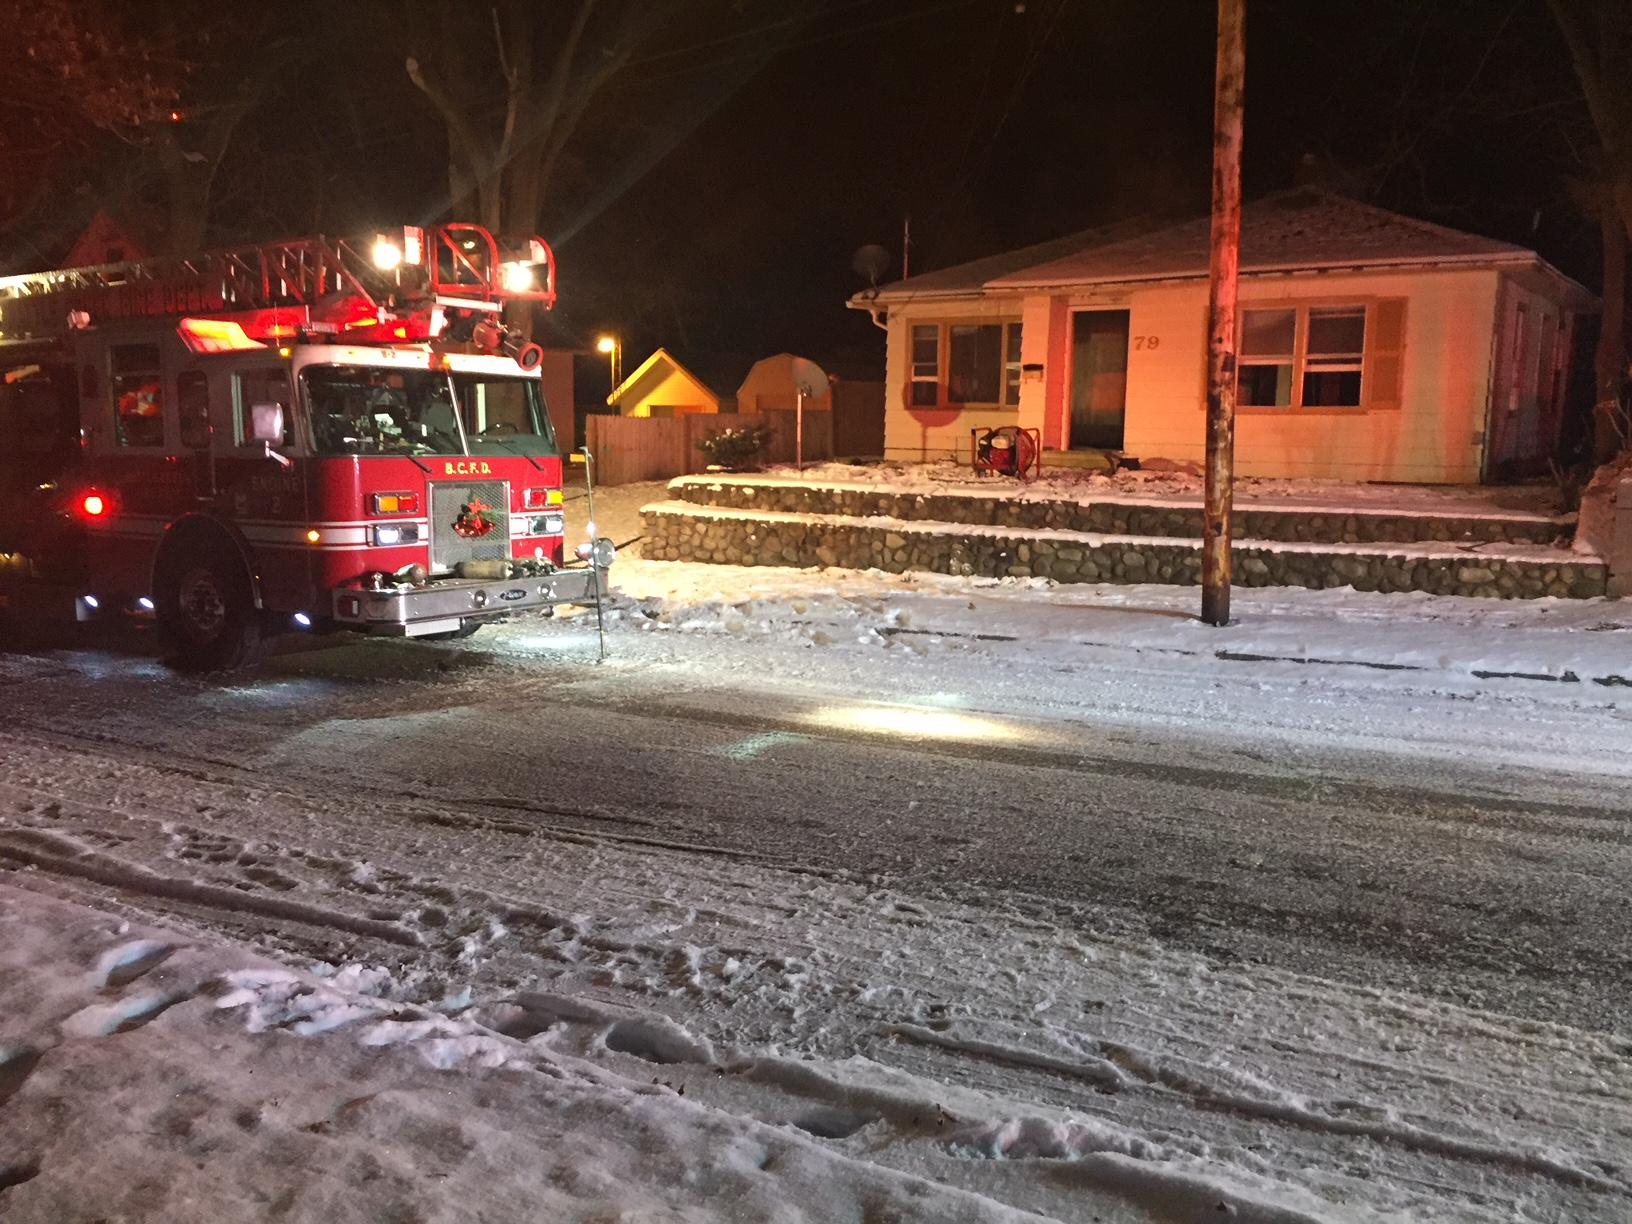 A fire breaks out at an abandoned home in Battle Creek early Wednesday morning. (WWMT/Jason Puhr)